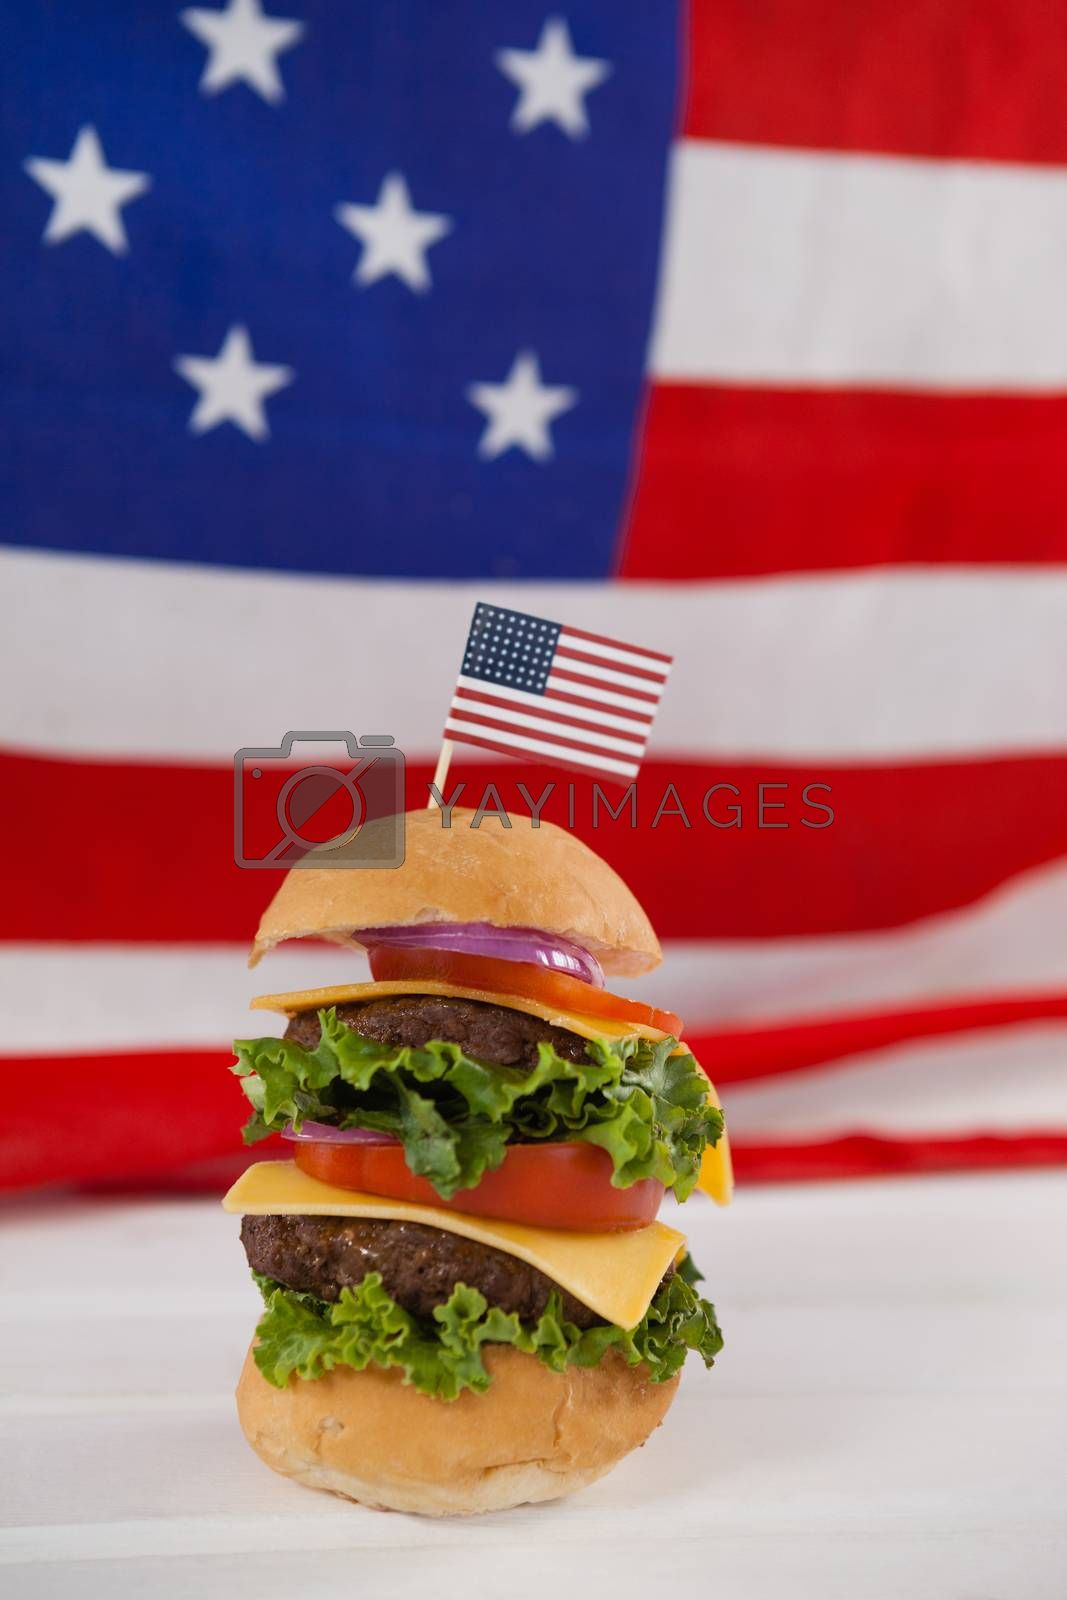 Hamburger with 4th july theme against American flag